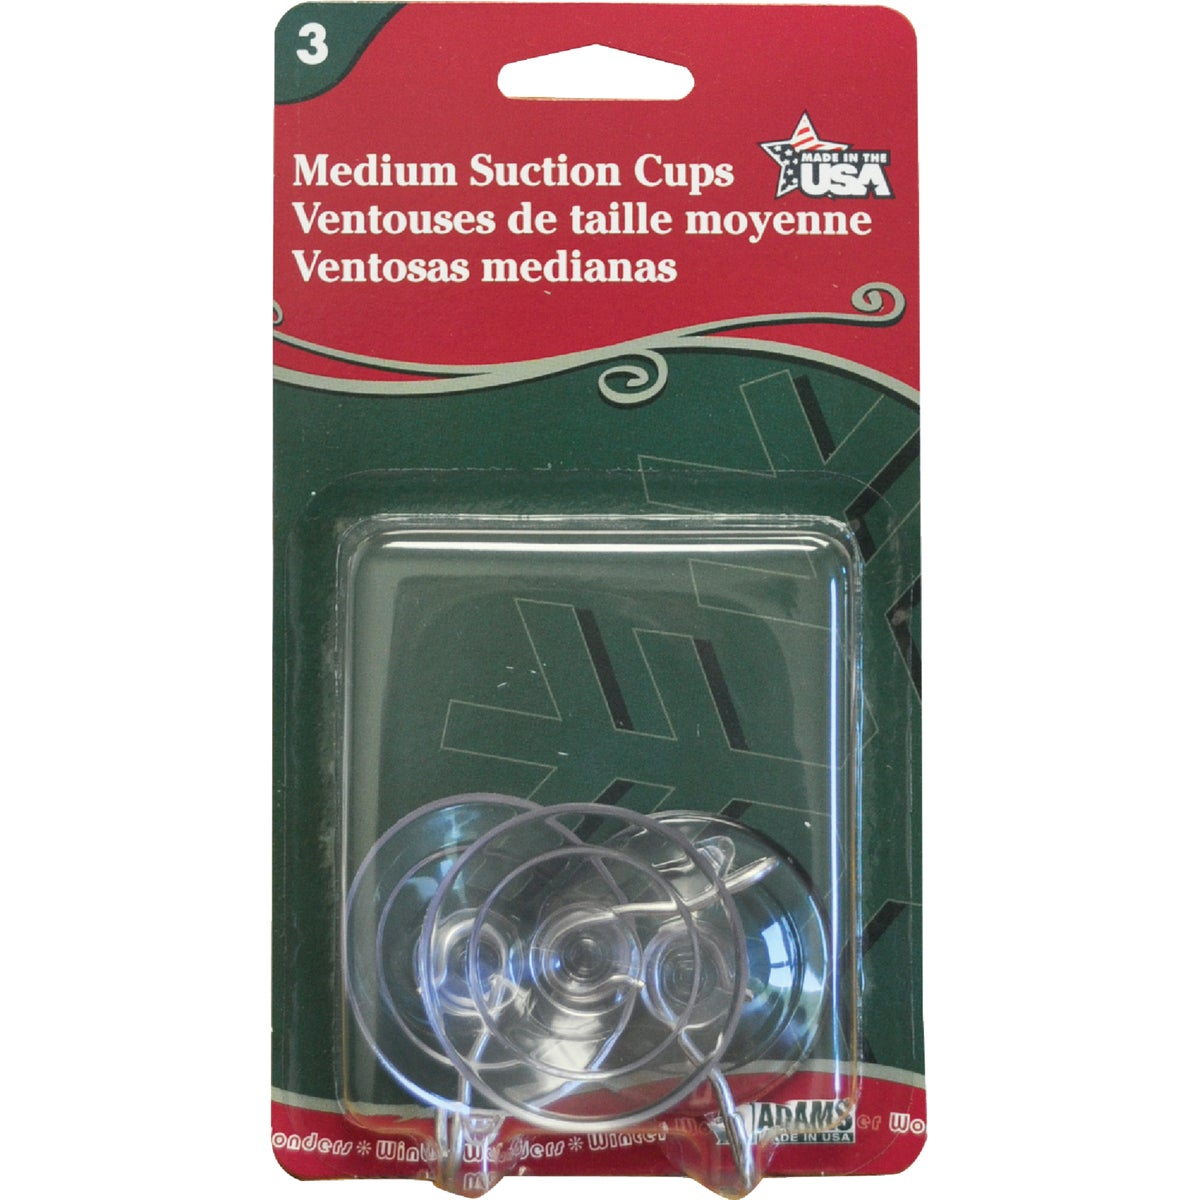 """Adams Mfg./Christmas 6500-74-1043 Suction Cups With Hook-1.75"""" MED SUCTION CUP at Sears.com"""